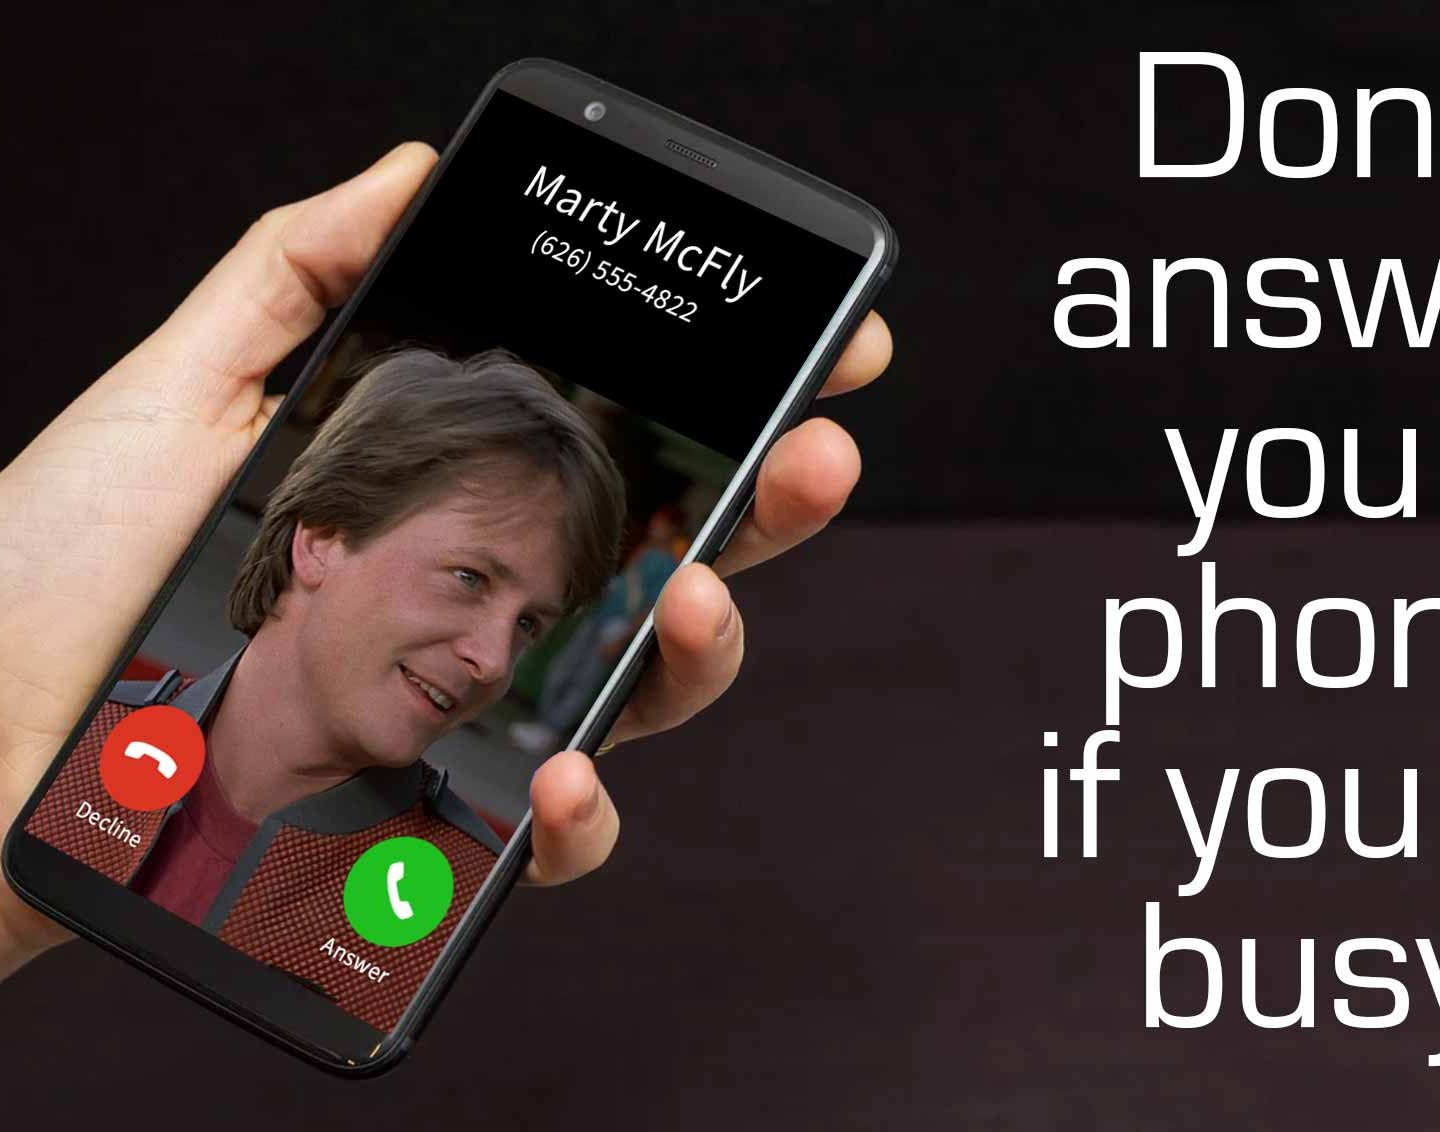 DON'T ANSWER THE PHONE IF YOU'RE BUSY!